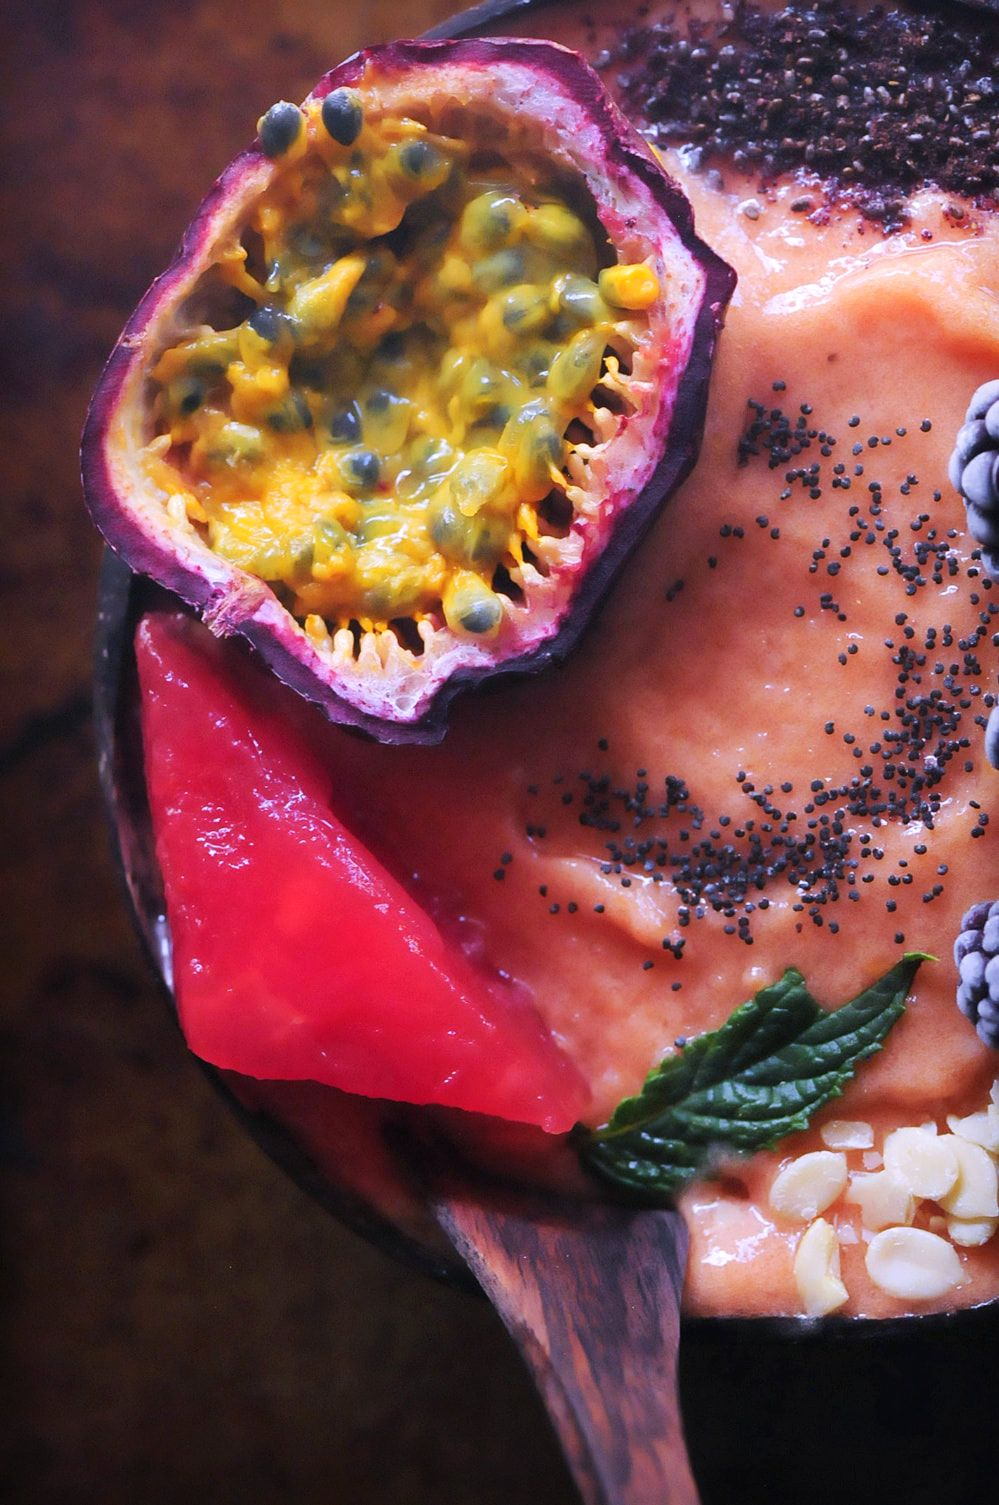 A creamy, refreshing, healthy, easy and TASTY Papaya Watermelon Nice Cream Smoothie Bowl ripe for the toppings of your choice! Gluten-free & Vegan. #papayasmoothiebowl #watermelonsmoothie #nicecream #vegansmoothiebowl #pinksmoothiebowl #papayawatermelon #watermelonnicecream